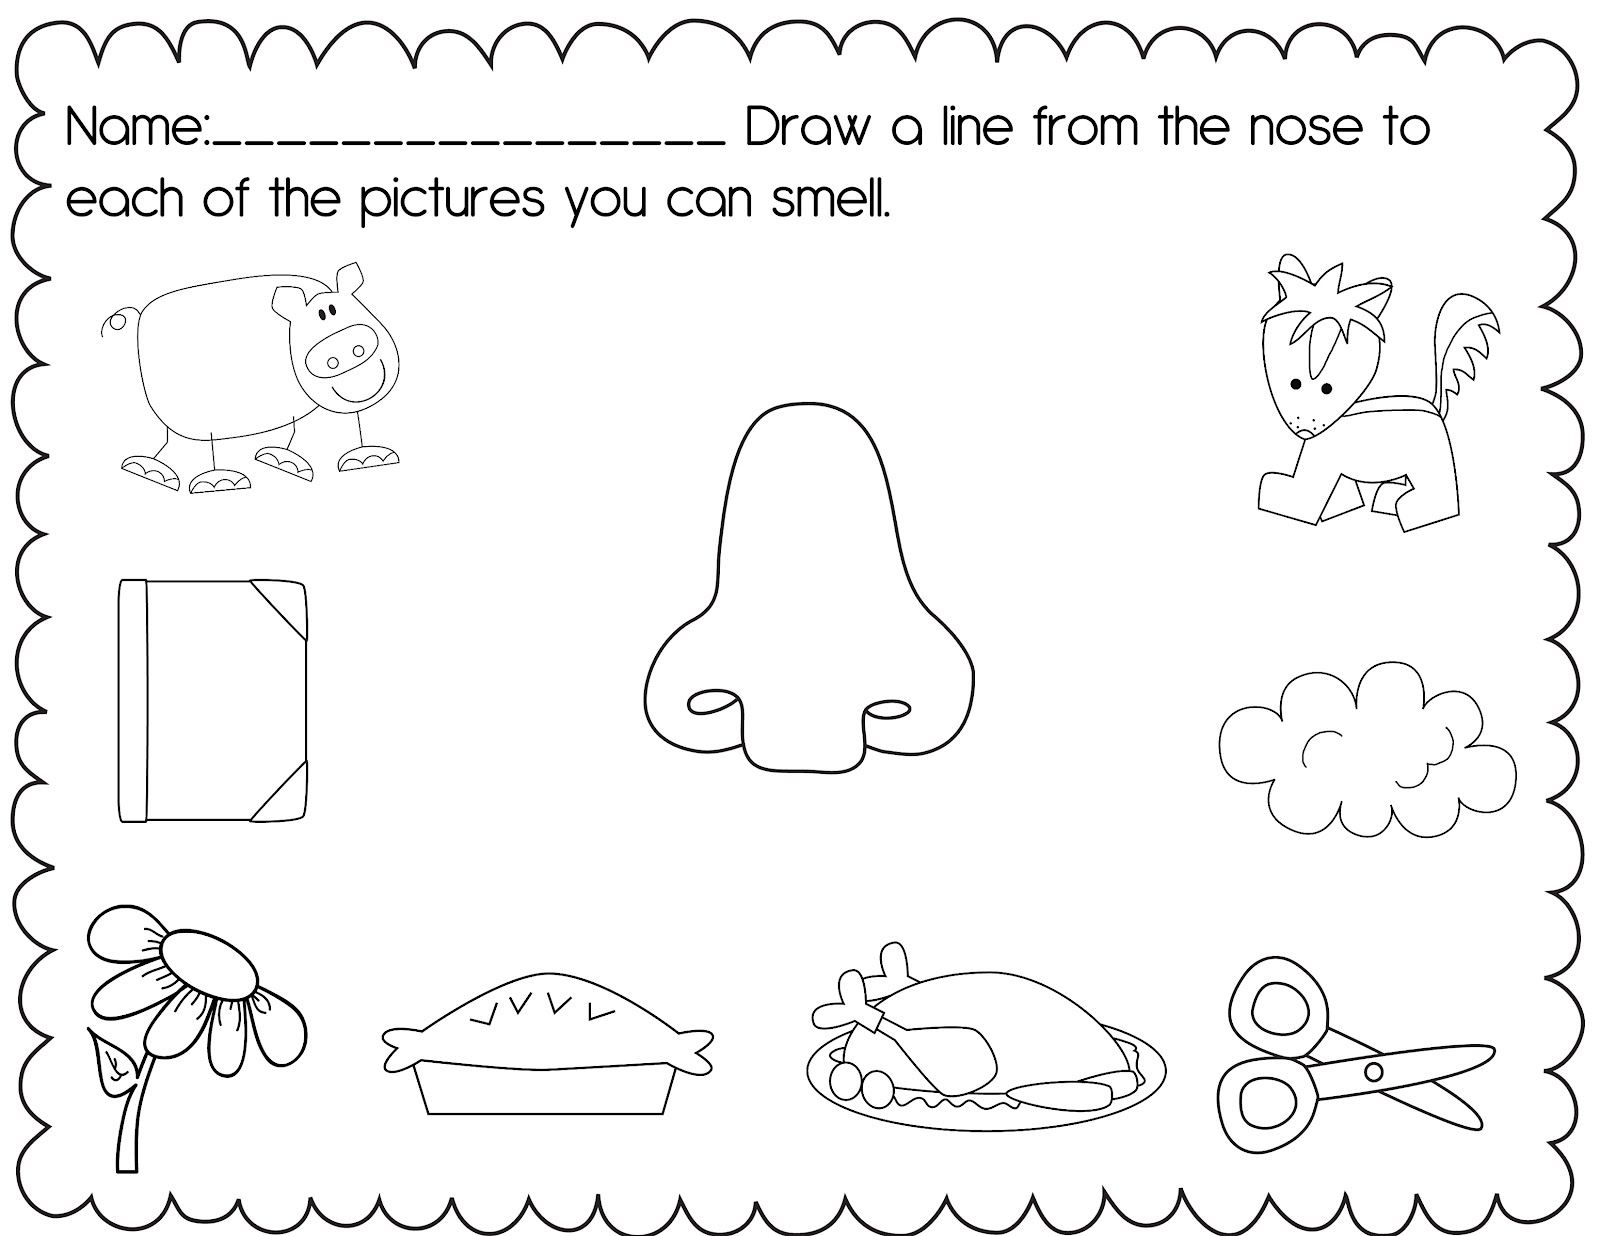 5 senses coloring pages - 5 Senses Preschool Printables The Crazy Pre K Classroom My 5 Senses Unit